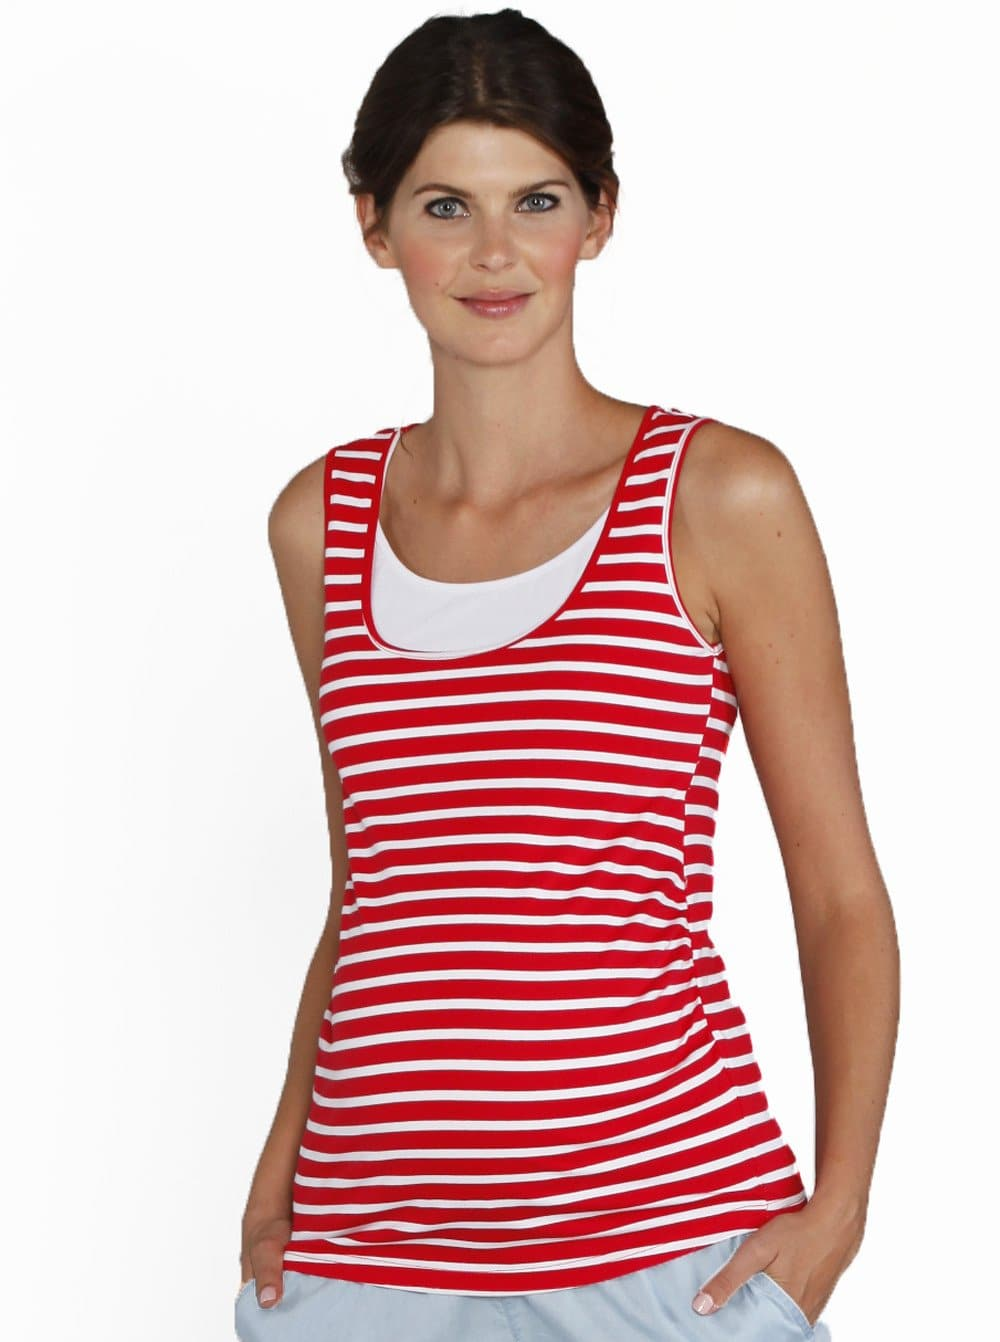 Basic Breastfeeding Nursing Tank in Red Stripes - Angel Maternity - Maternity clothes - shop online